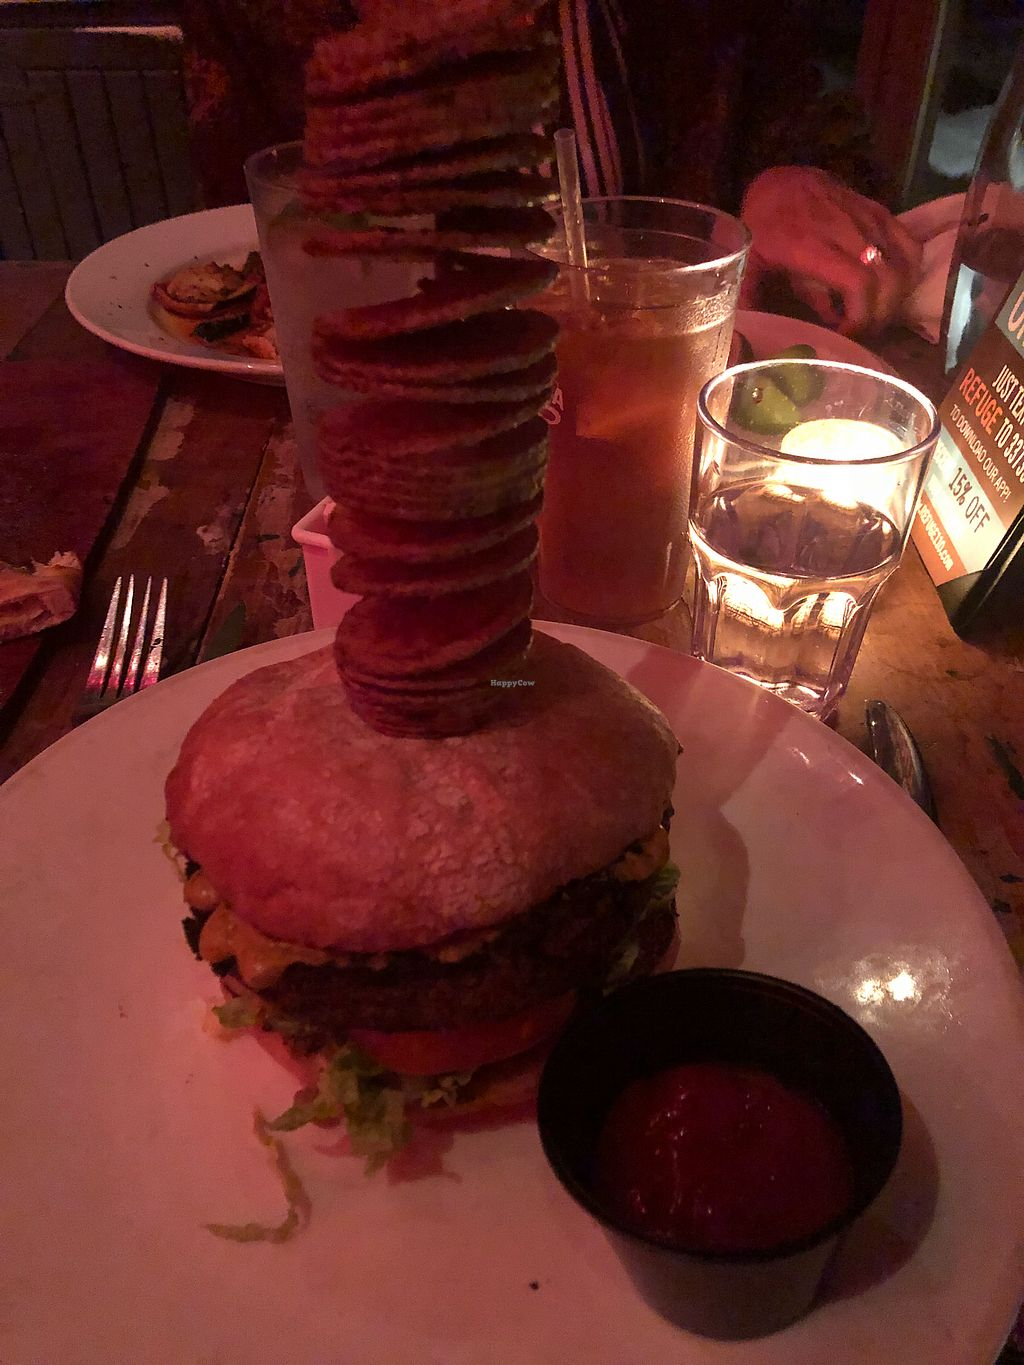 """Photo of The Refuge   by <a href=""""/members/profile/PatrickCavanagh"""">PatrickCavanagh</a> <br/>The best burger ever!! <br/> January 12, 2018  - <a href='/contact/abuse/image/90507/345636'>Report</a>"""